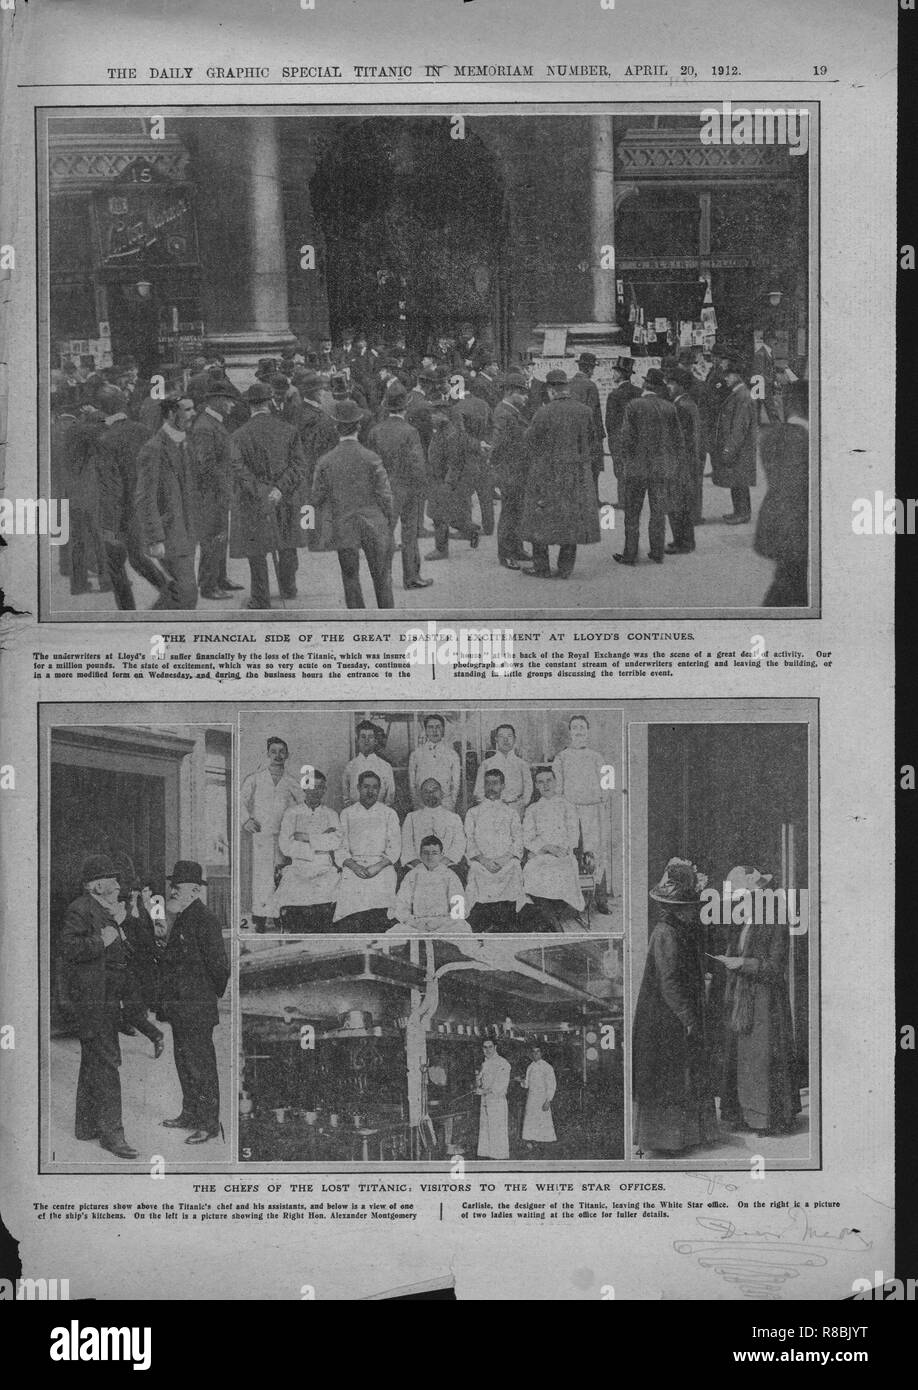 Crowds outside Lloyd's of London, chefs on board, and visitors at the White Star offices, April 20, 1912. 'The Financial Side of the Great Disaster, Excitement at Lloyd's Continues': crowds outside Lloyd's insurance offices in London as news of the disaster unfolds. 'The Chefs of the Lost Titanic': catering staff on the ship. 'Visitors to the White Star Offices': relatives and friends wait anxiously for information on passengers. The White Star Line ship RMS 'Titanic' struck an iceberg in thick fog off Newfoundland on 14 April 1912. She was the largest and most luxurious ocean liner of her tim - Stock Image